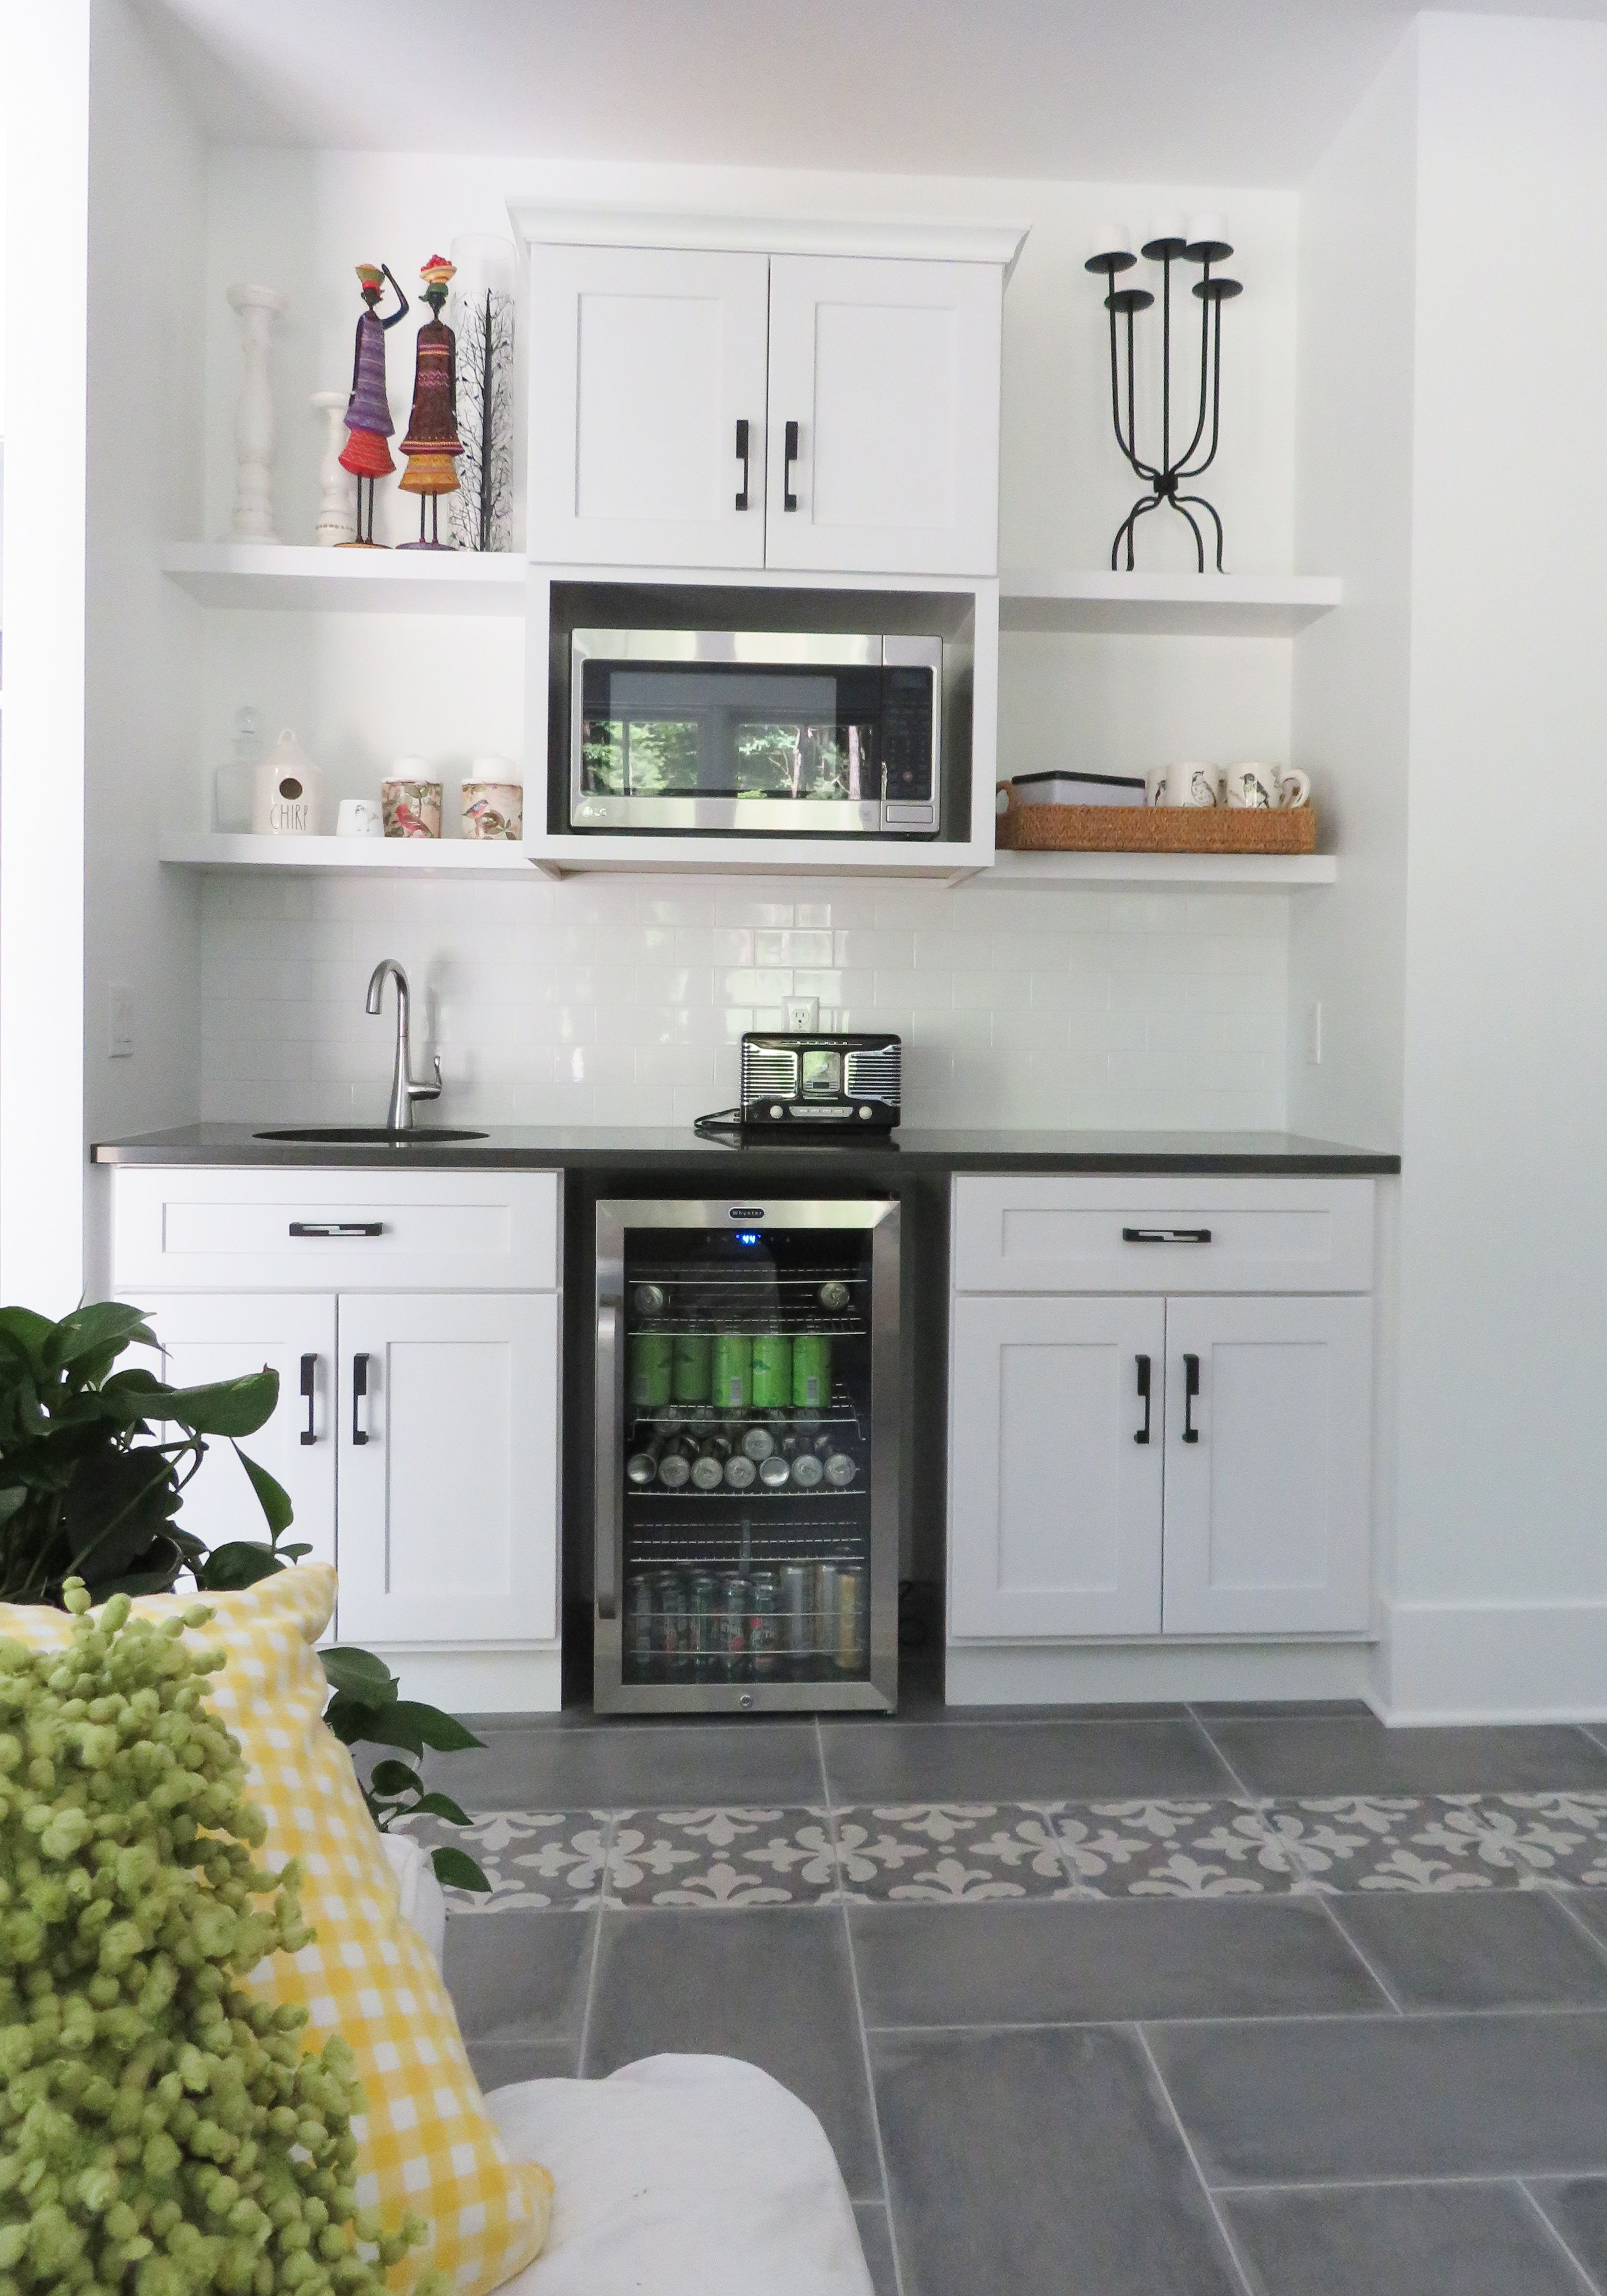 A Basement Wet Bar With Floating Shelves White Cabinetry And Quartz Countertops Kitchen And Bath Design Wet Bar Wet Bar Sink